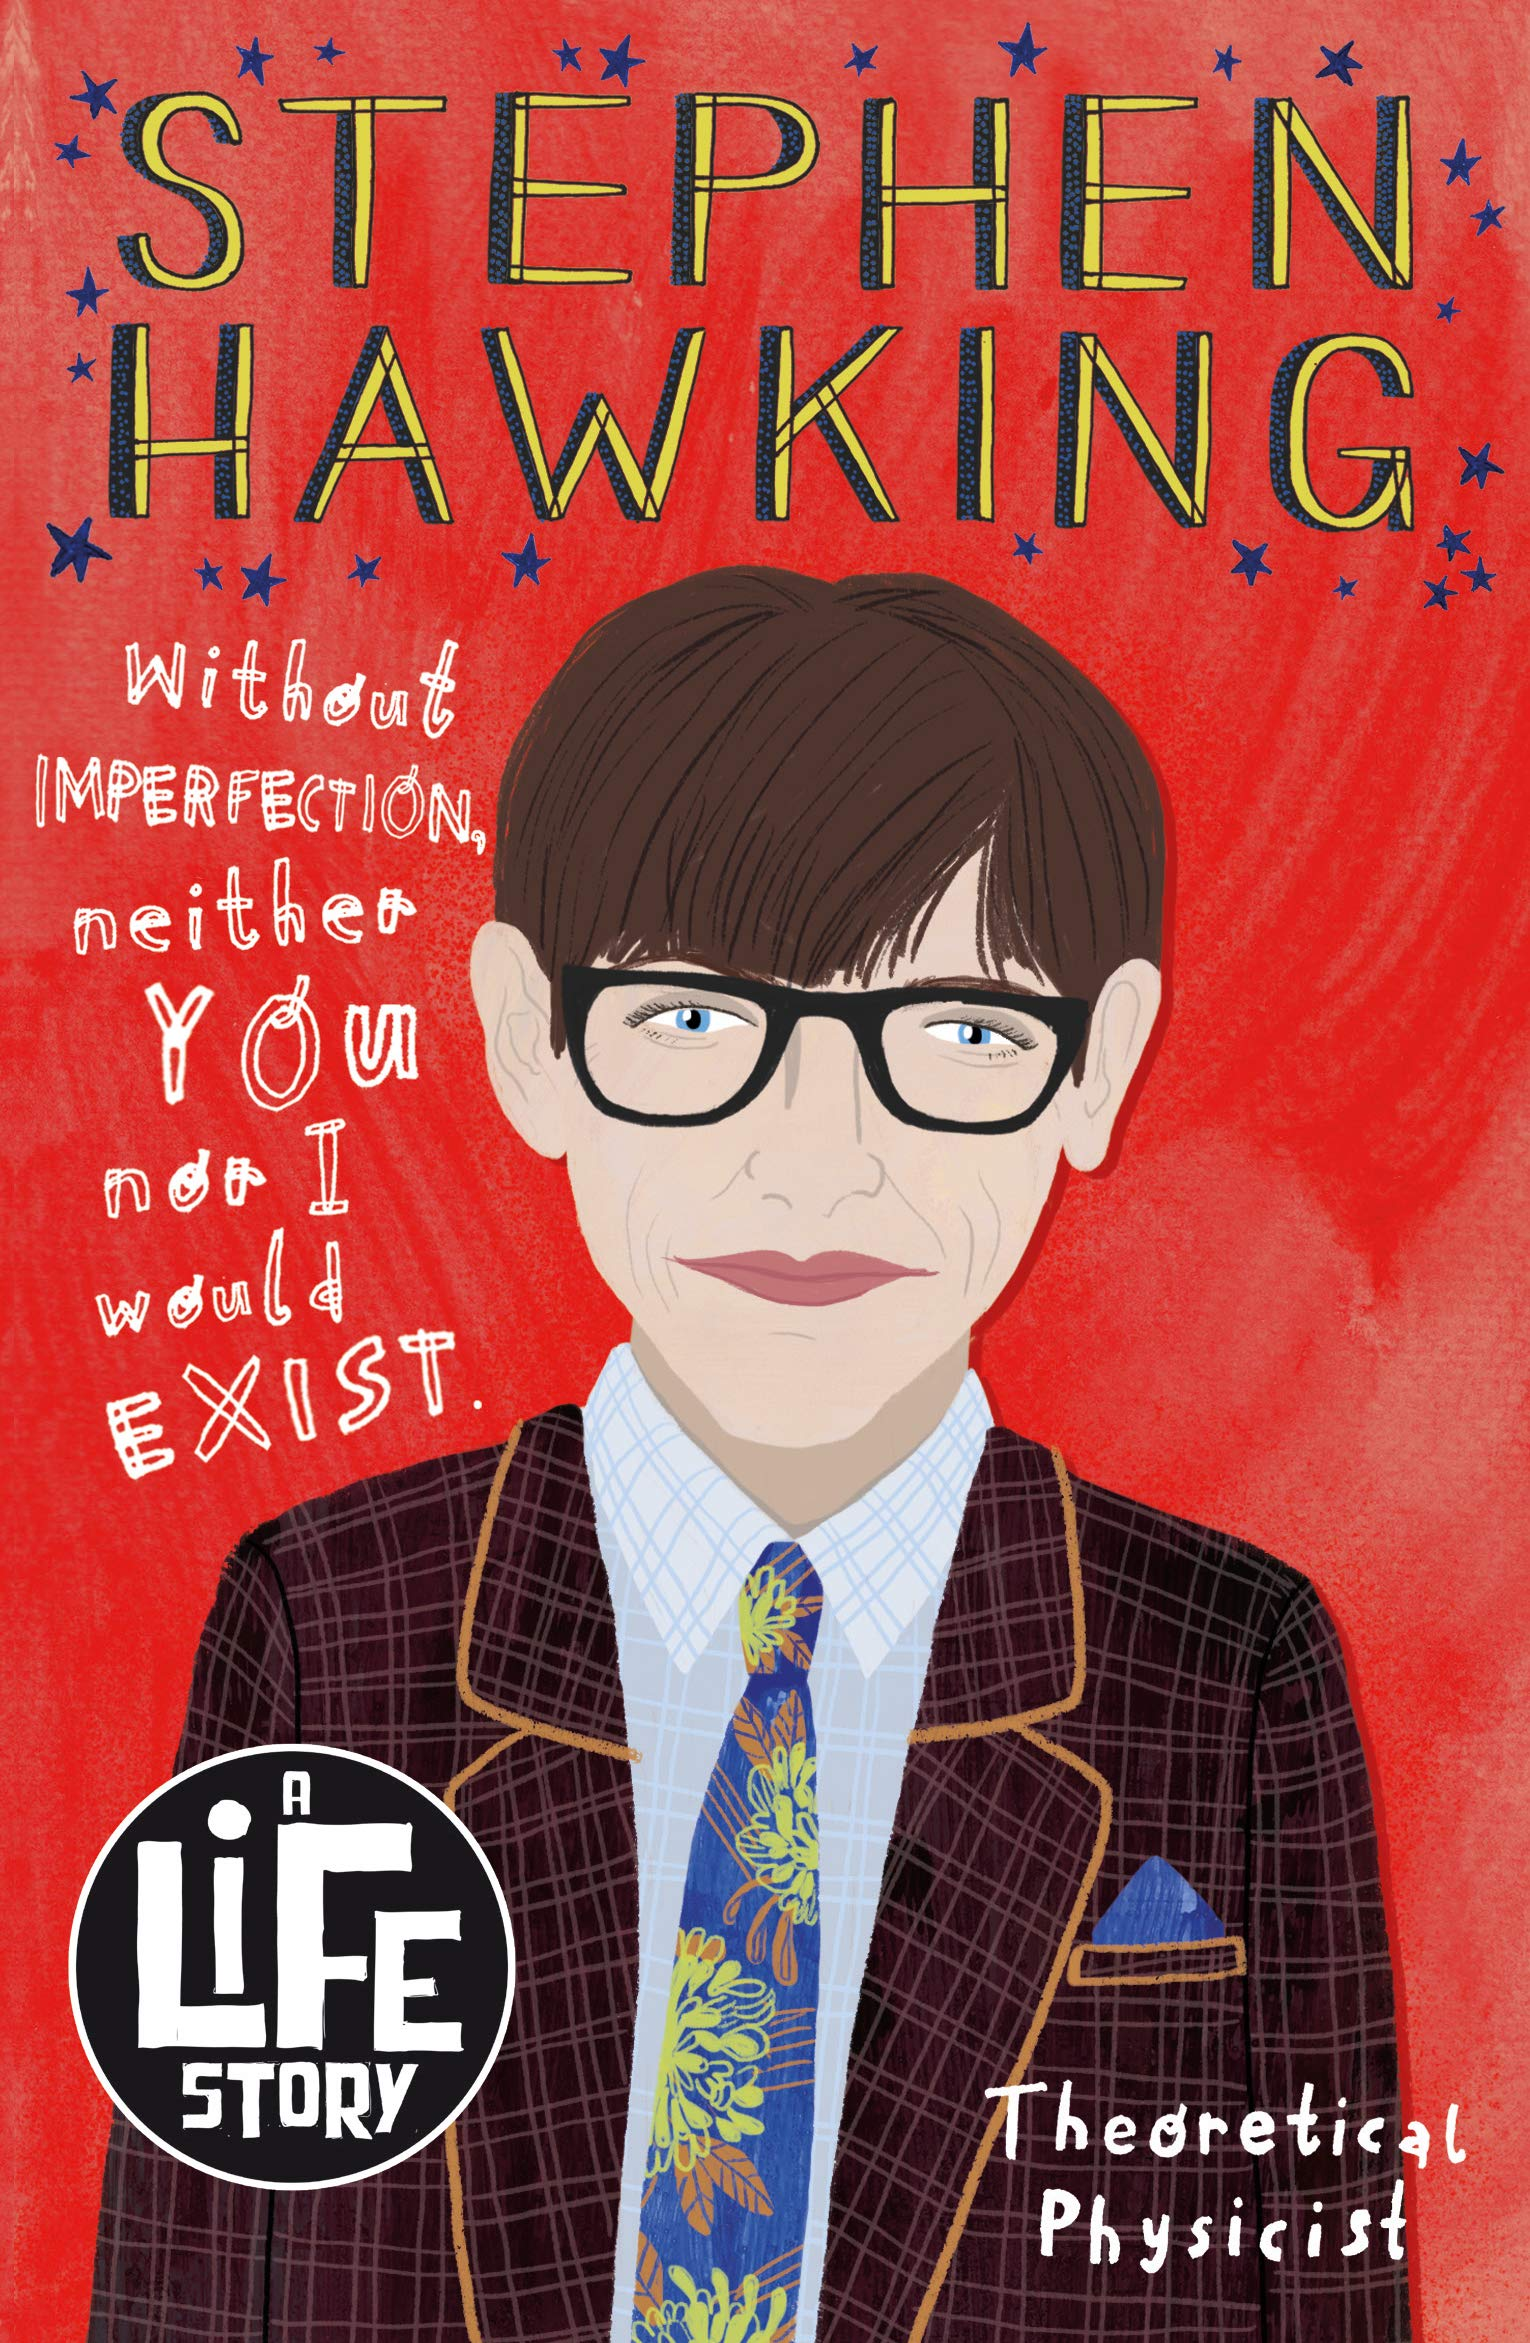 Stephen Hawking (A Life Story): Amazon.co.uk: Sheehan, Nikki:  9781407193182: Books